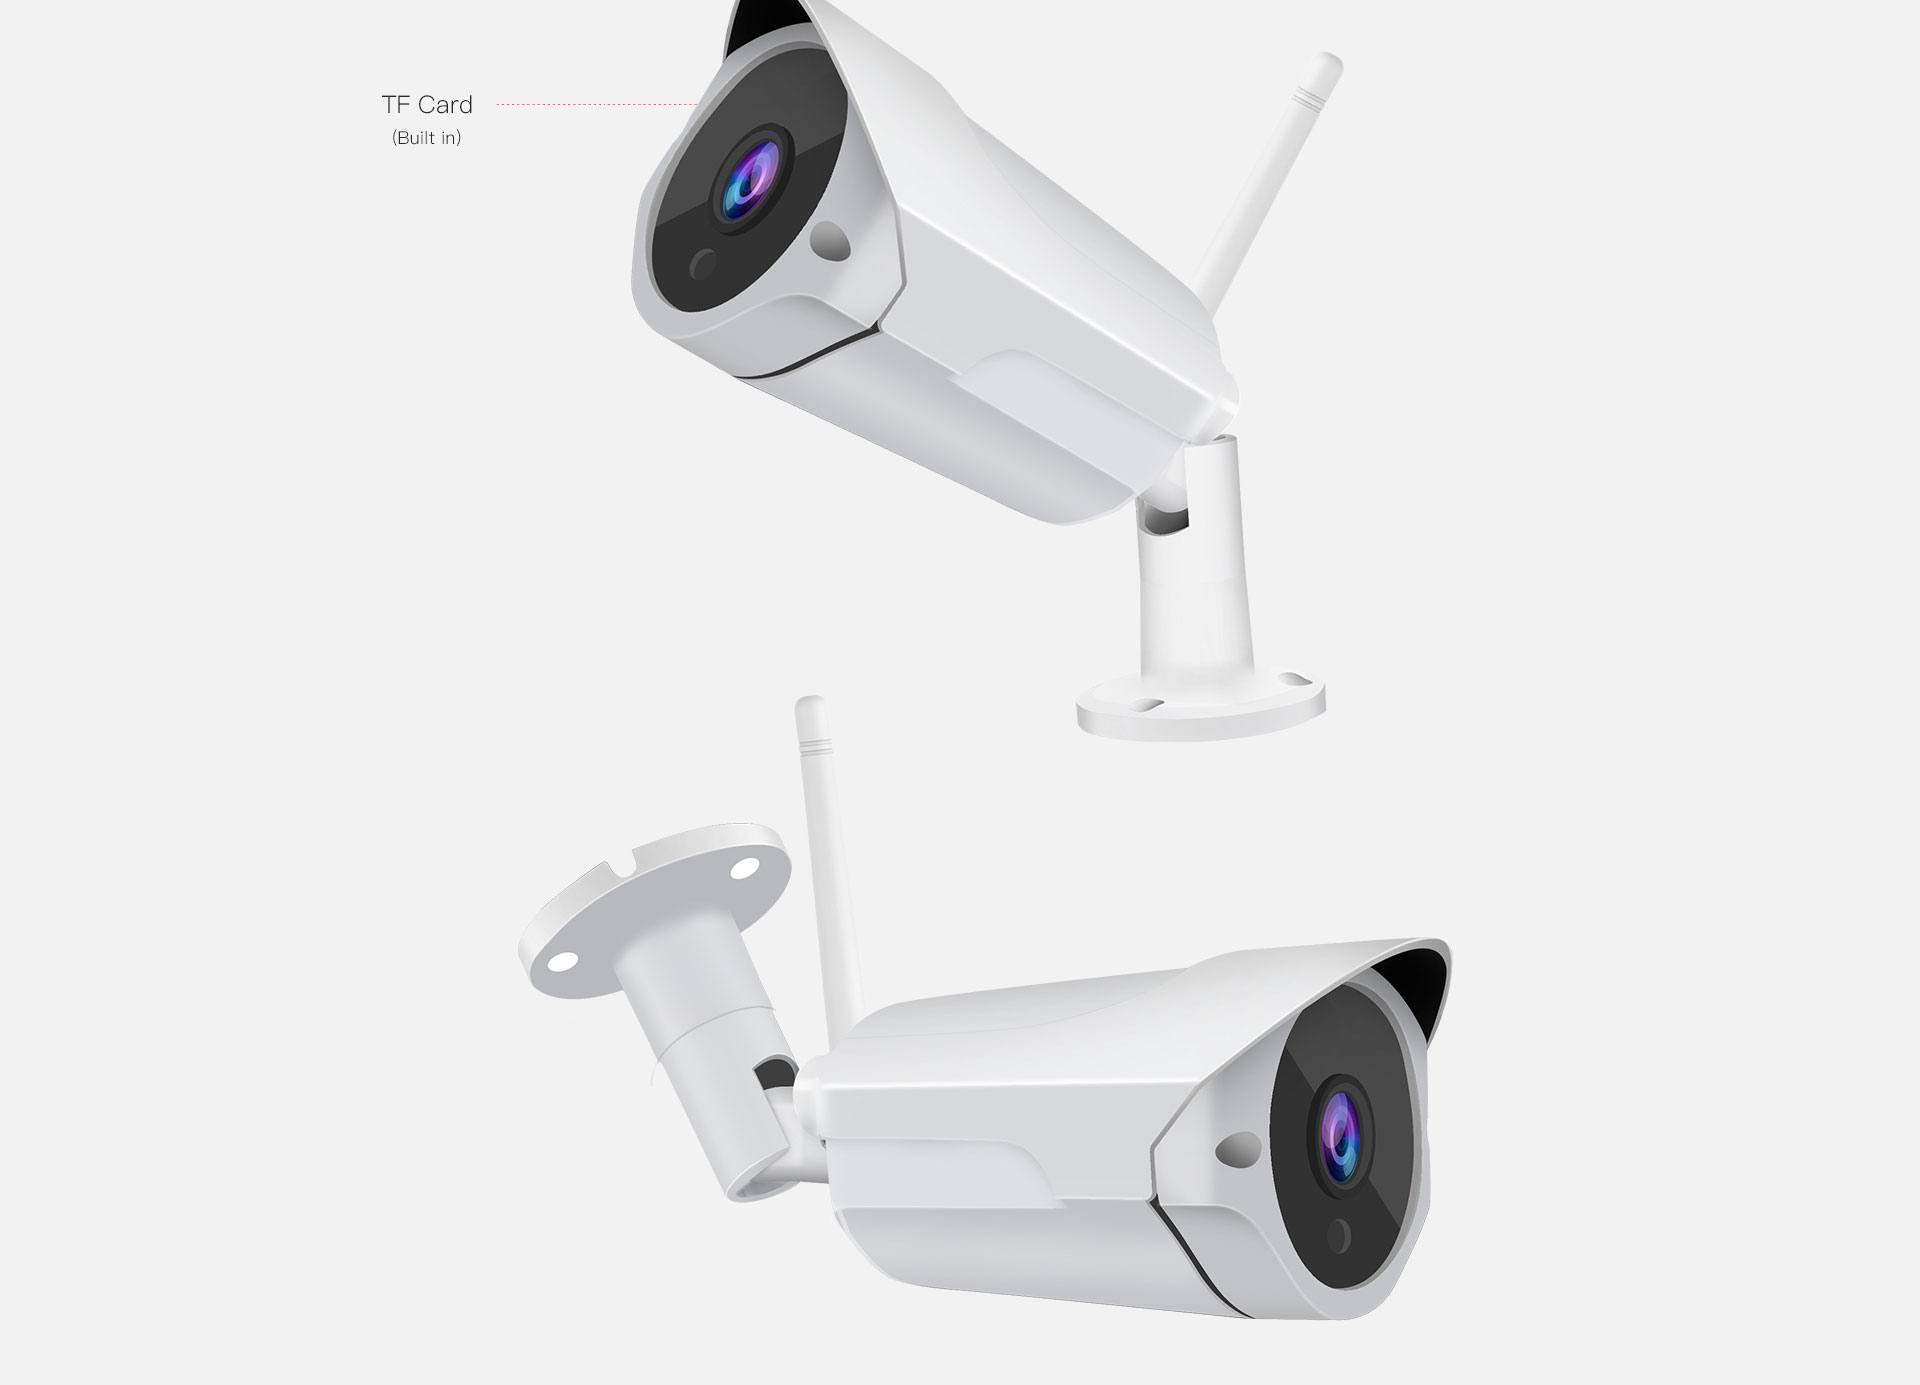 waterproof outdoor Security camera